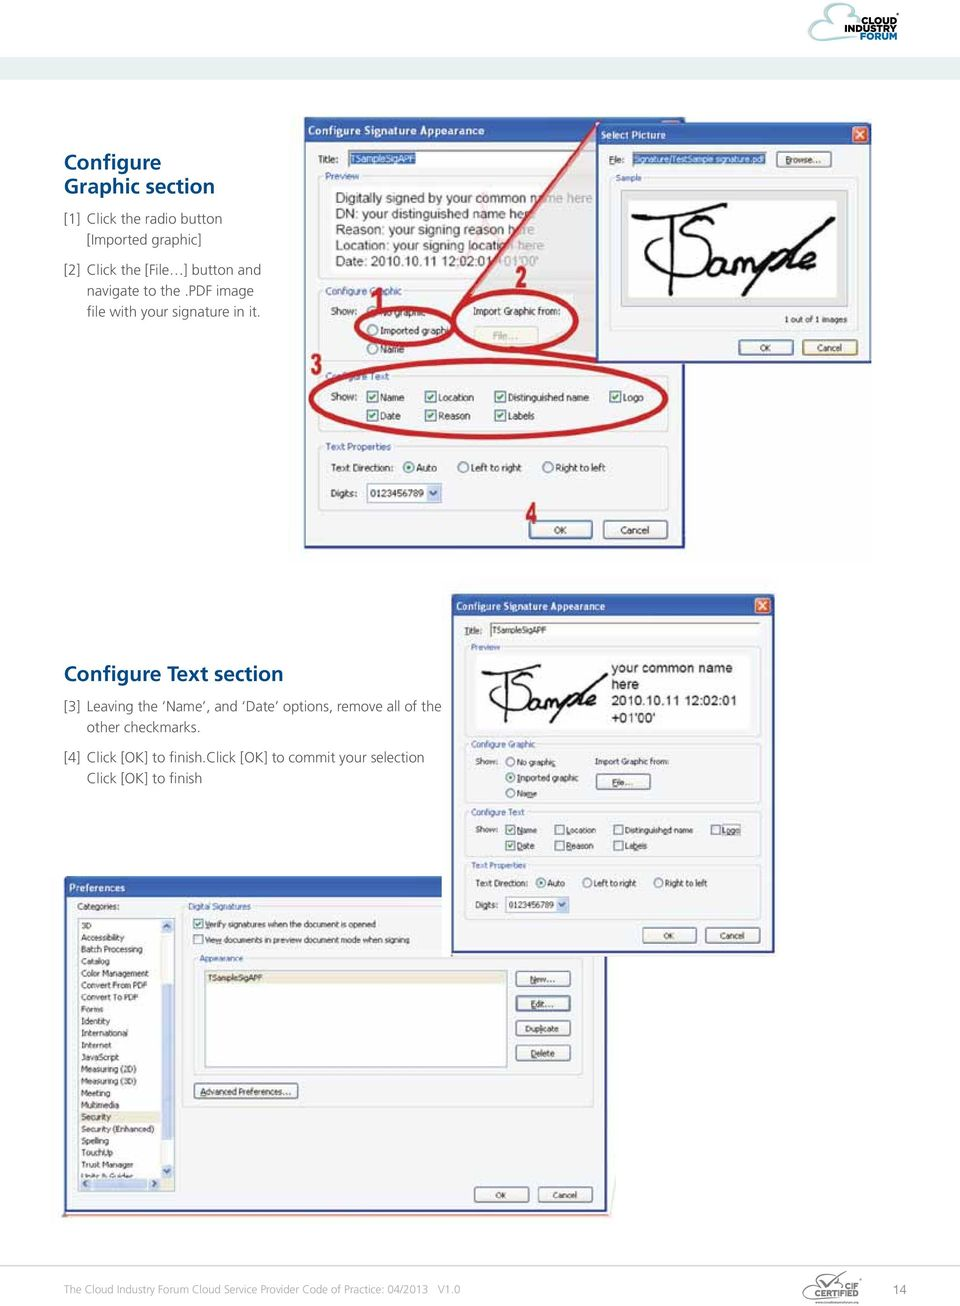 [2] Click the [File ] button and navigate to the.pdf image d Date options, checkmarks. file with your signature in it.